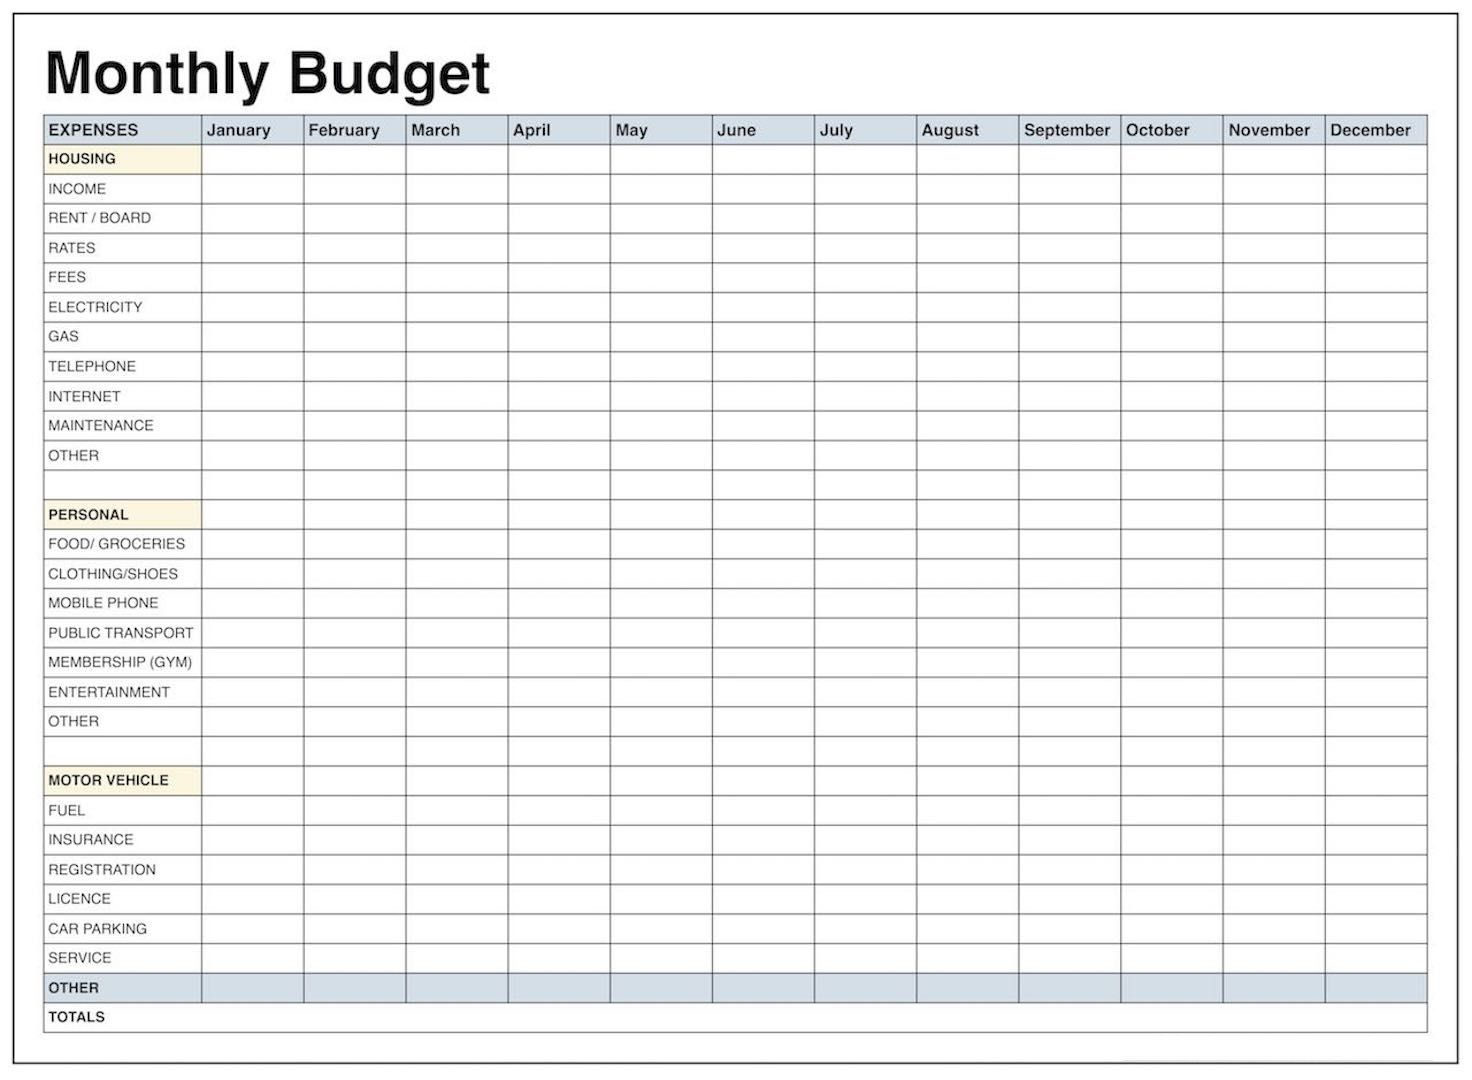 Printable Monthly Budget Worksheet Excel - Koran.sticken.co | Monthly Budget Worksheet Printable